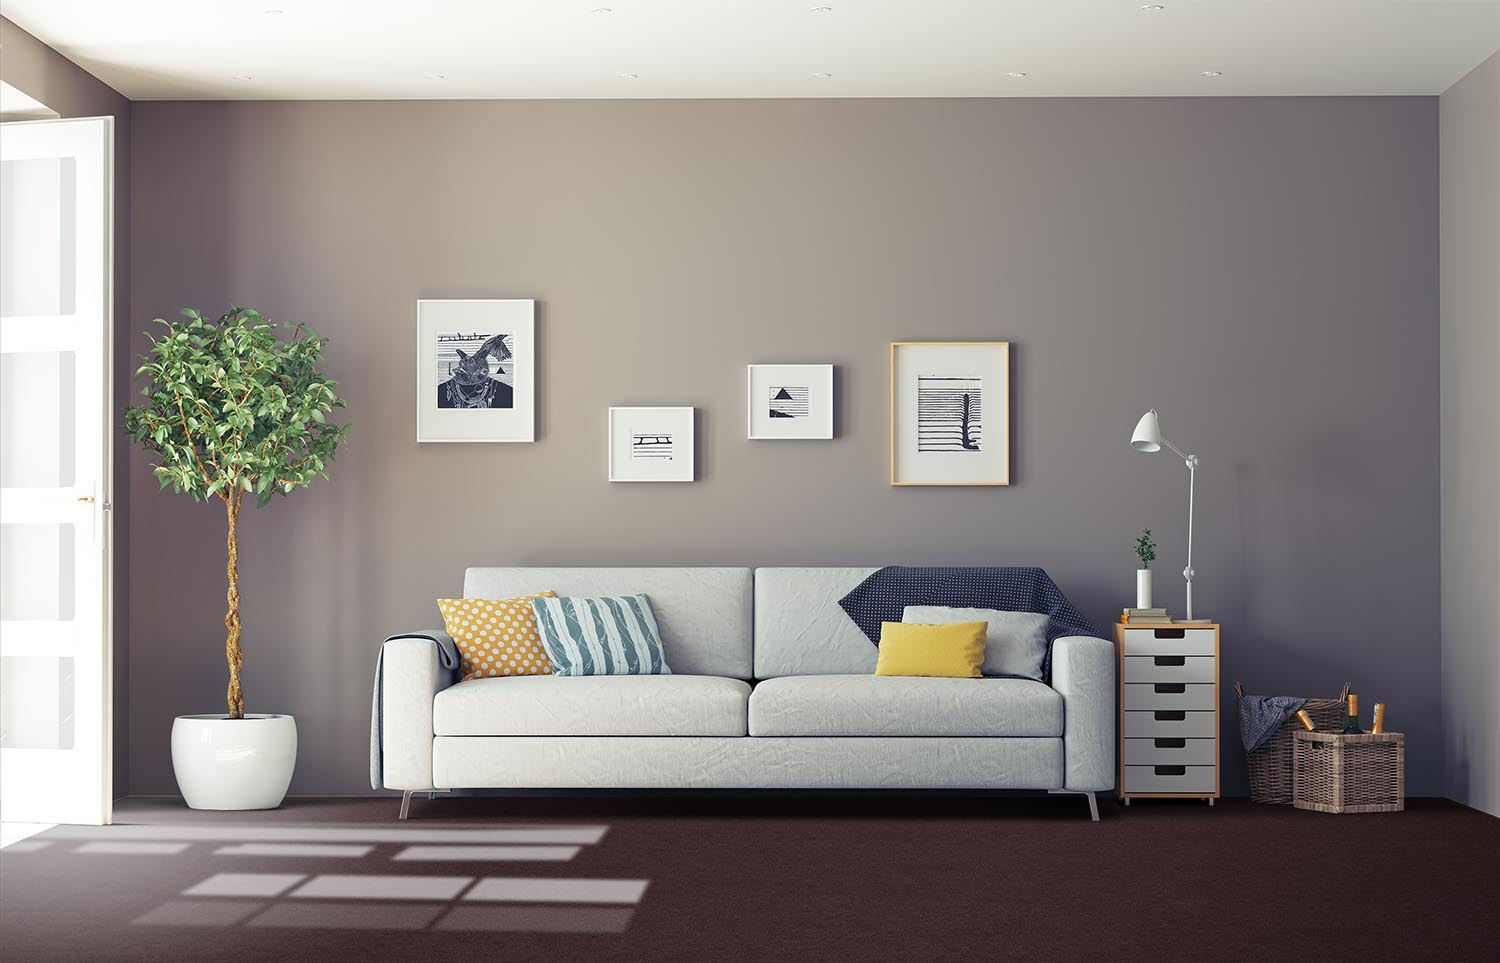 Softology - S201 - Swoon classic living room